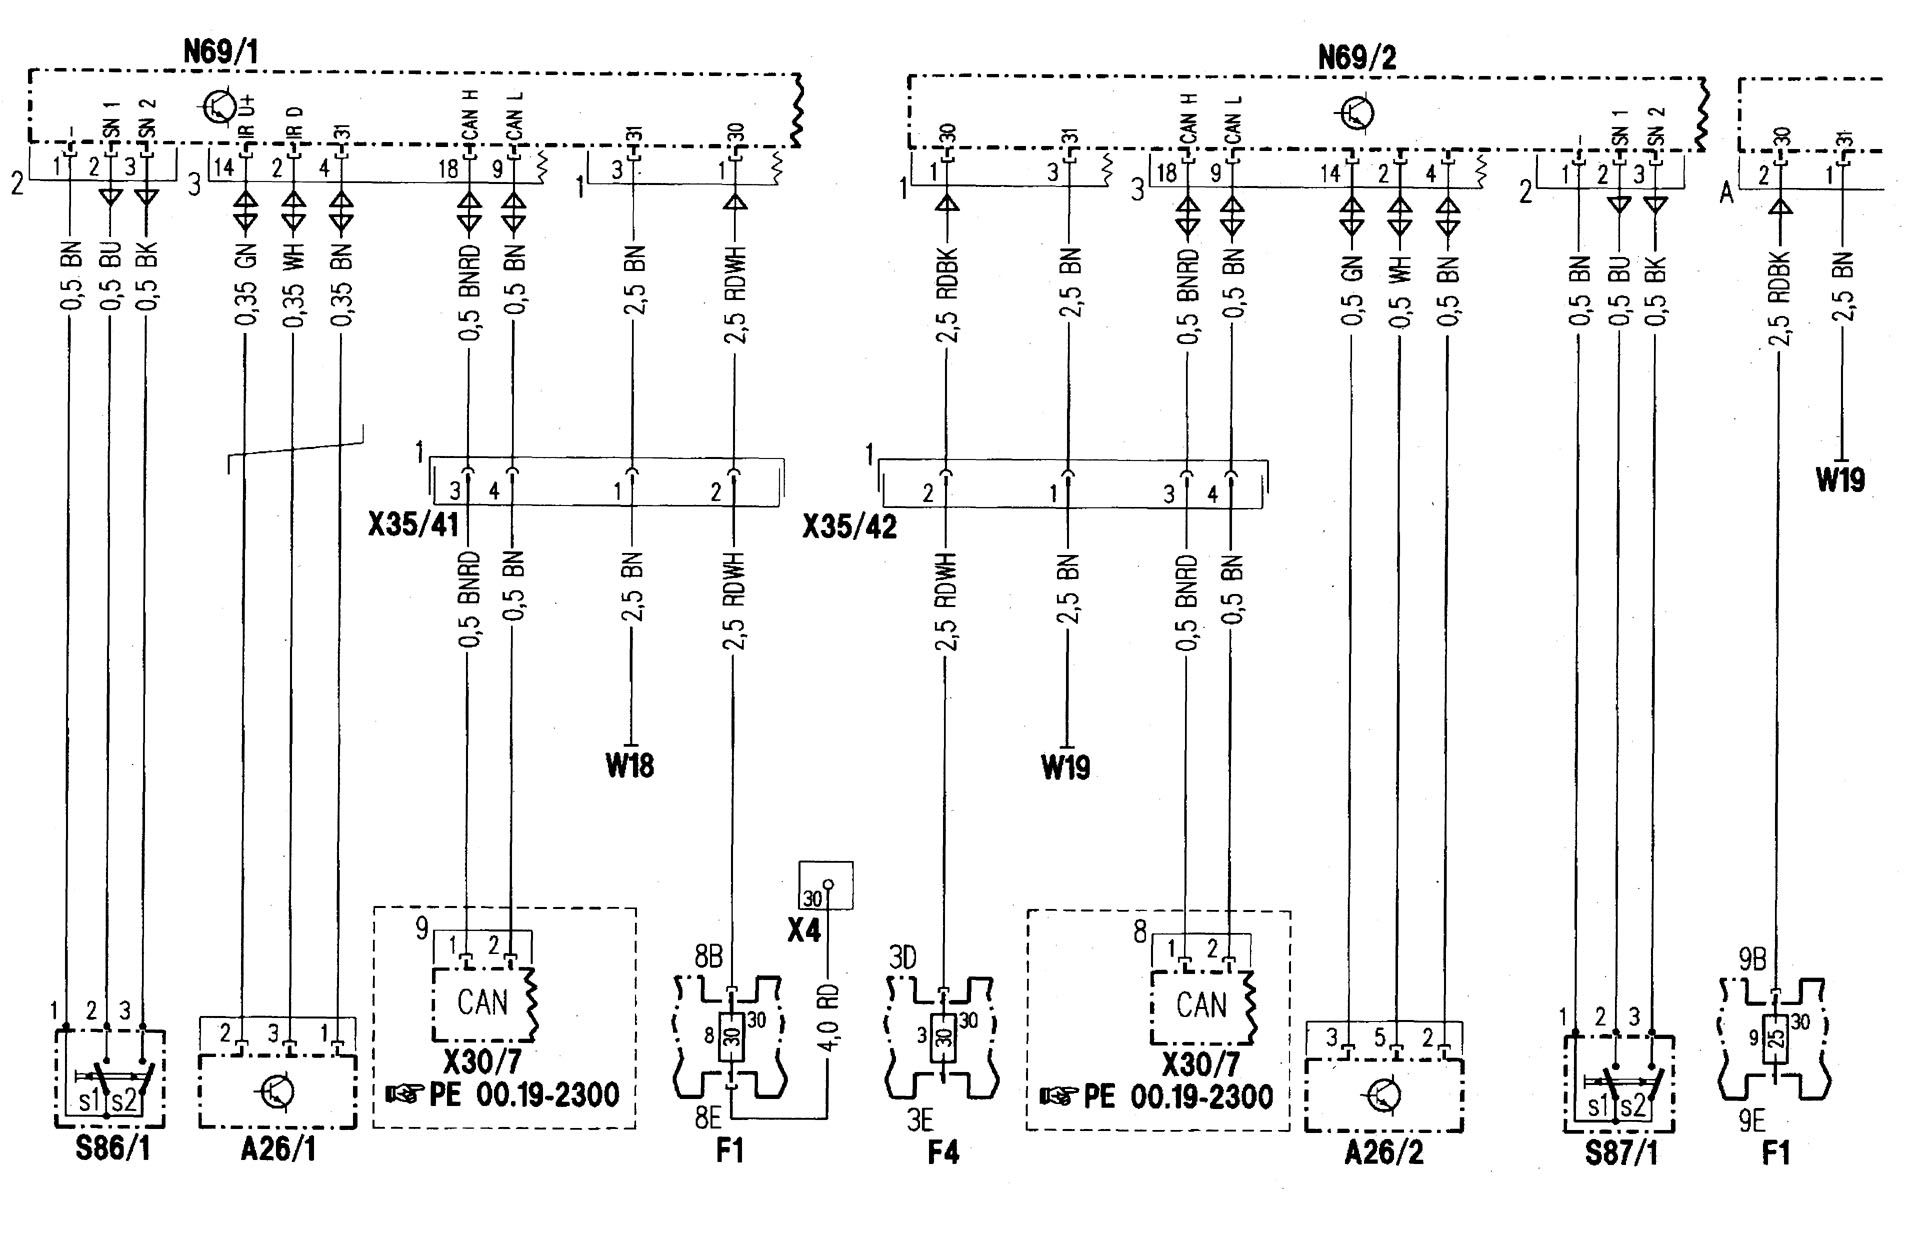 Mercede Benz 2006 C230 Fuse Box Diagram